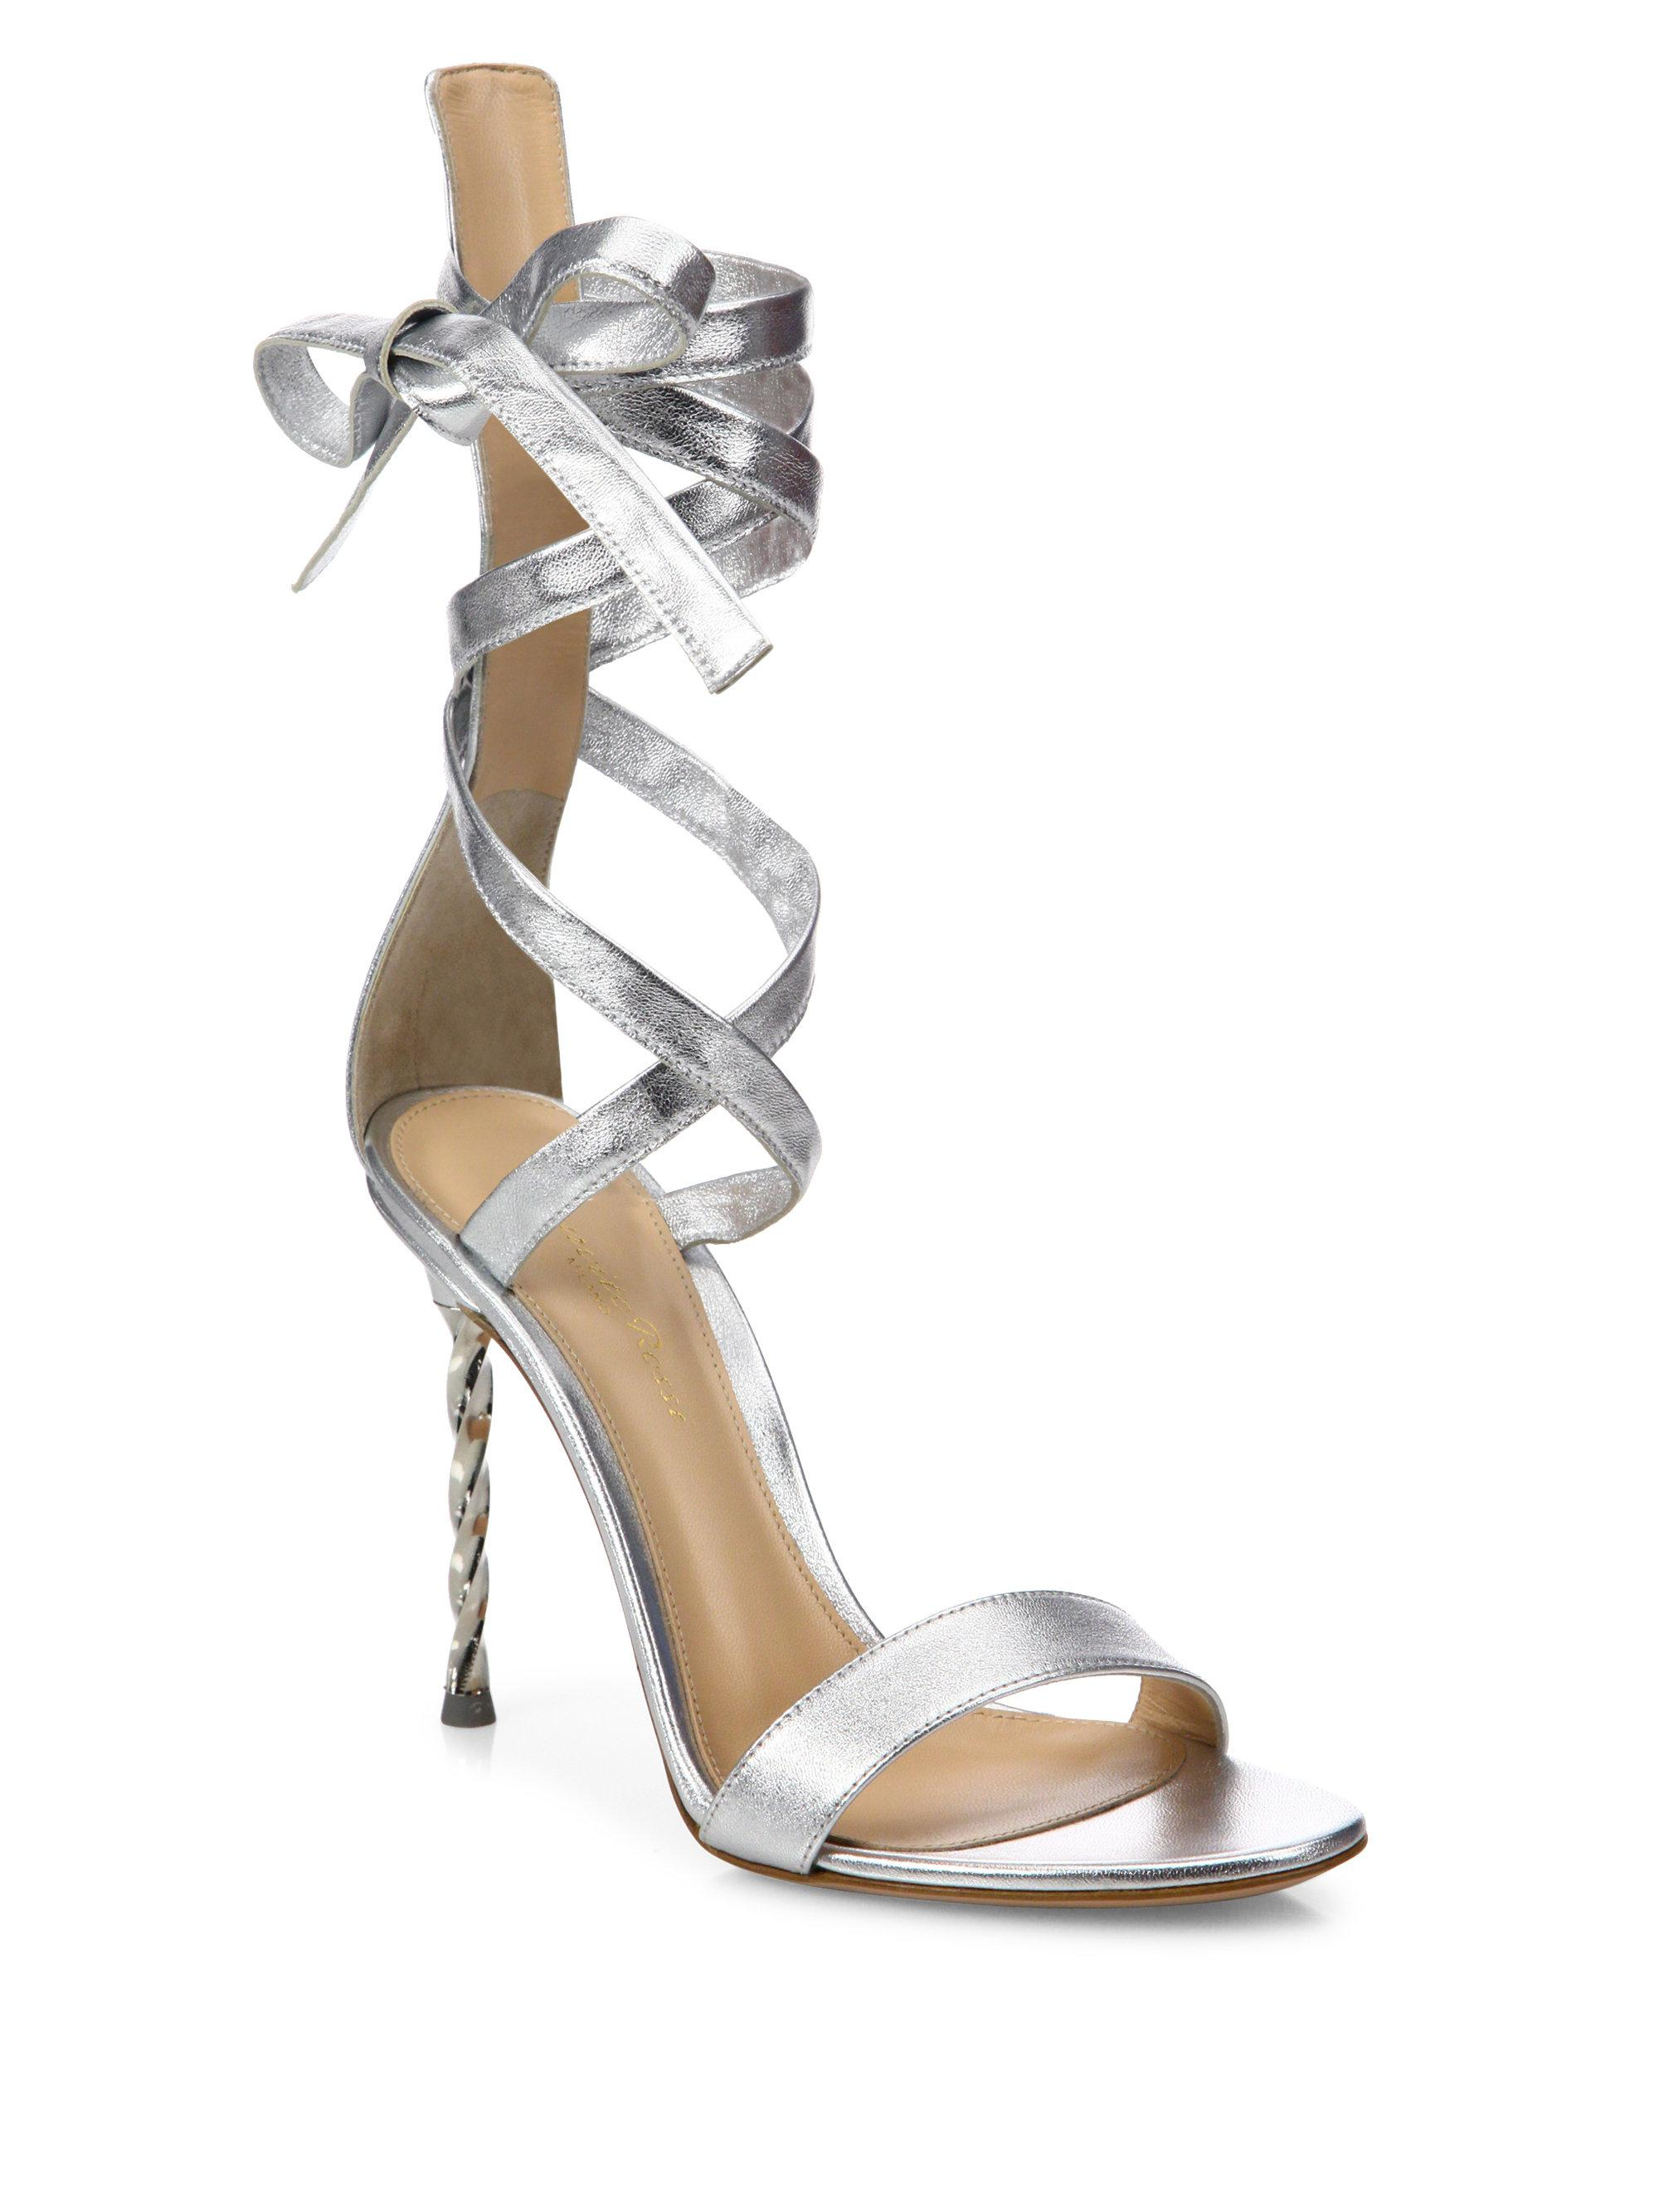 489f9fe9513 Lyst - Gianvito Rossi Folie Metallic Leather Ankle-wrap Sandals in ...